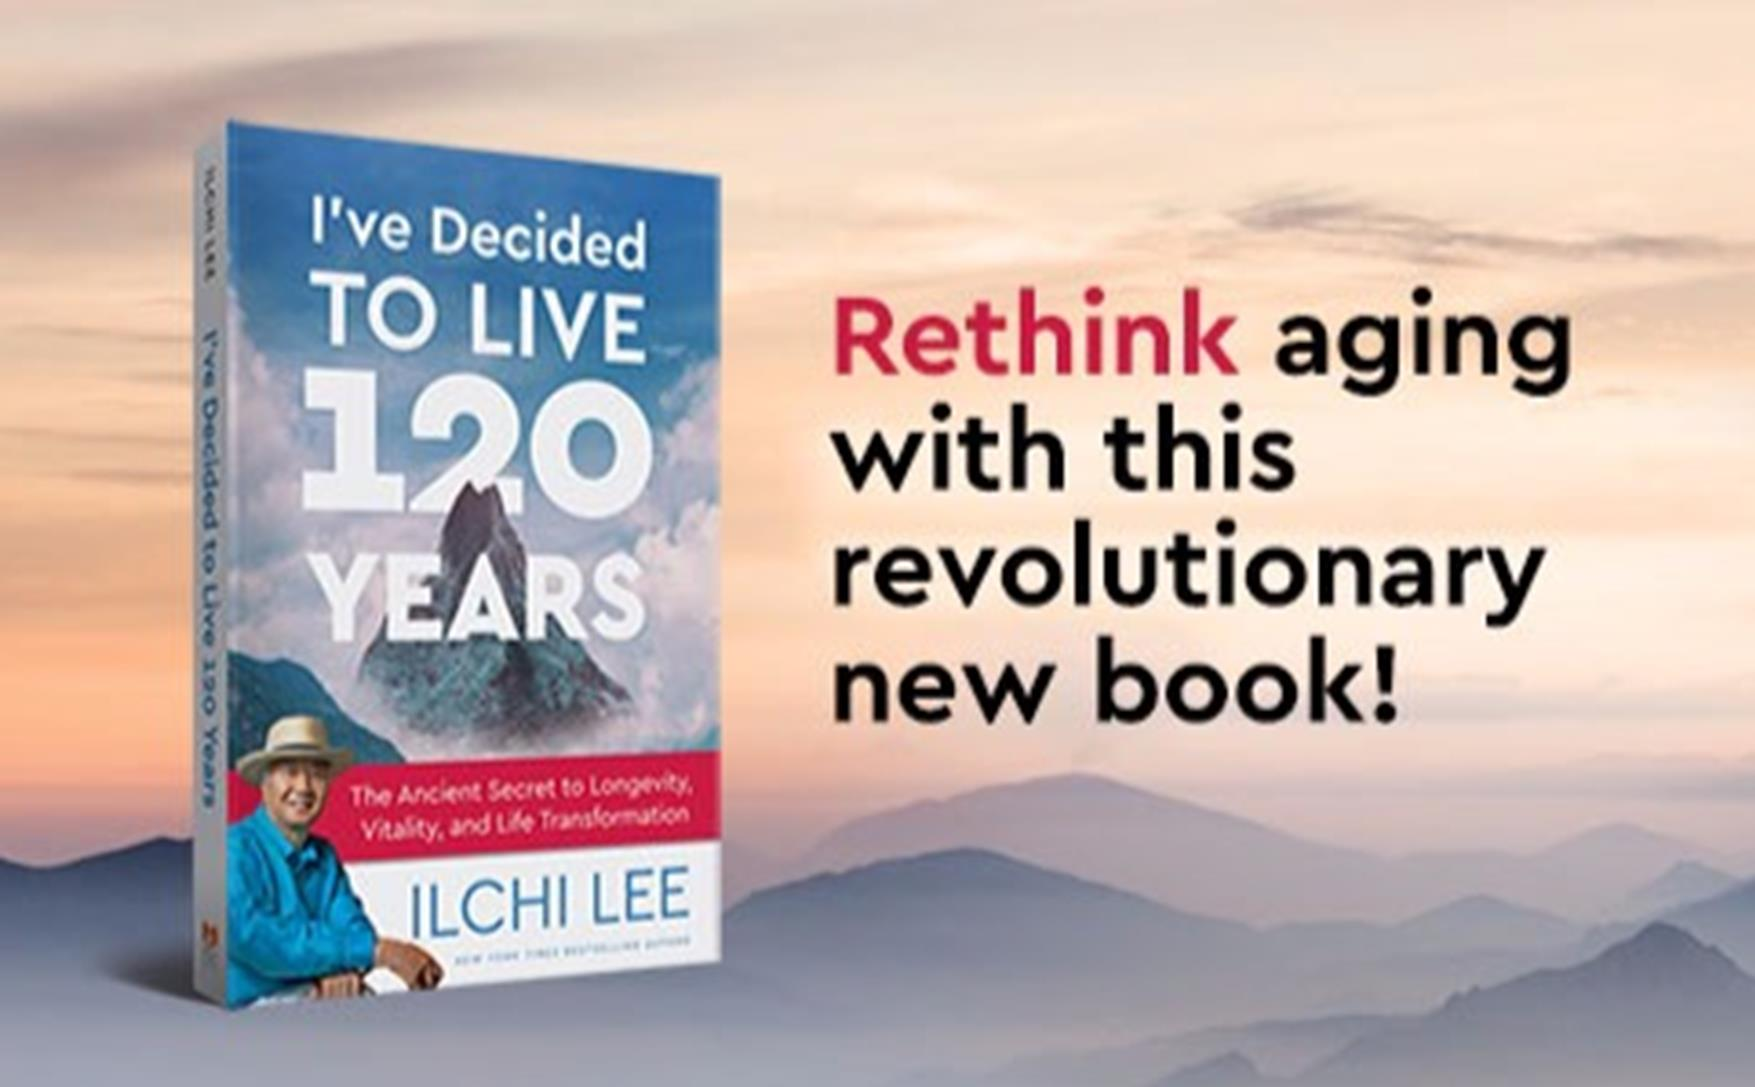 New Book Says You Can Decide to Live 120 Years